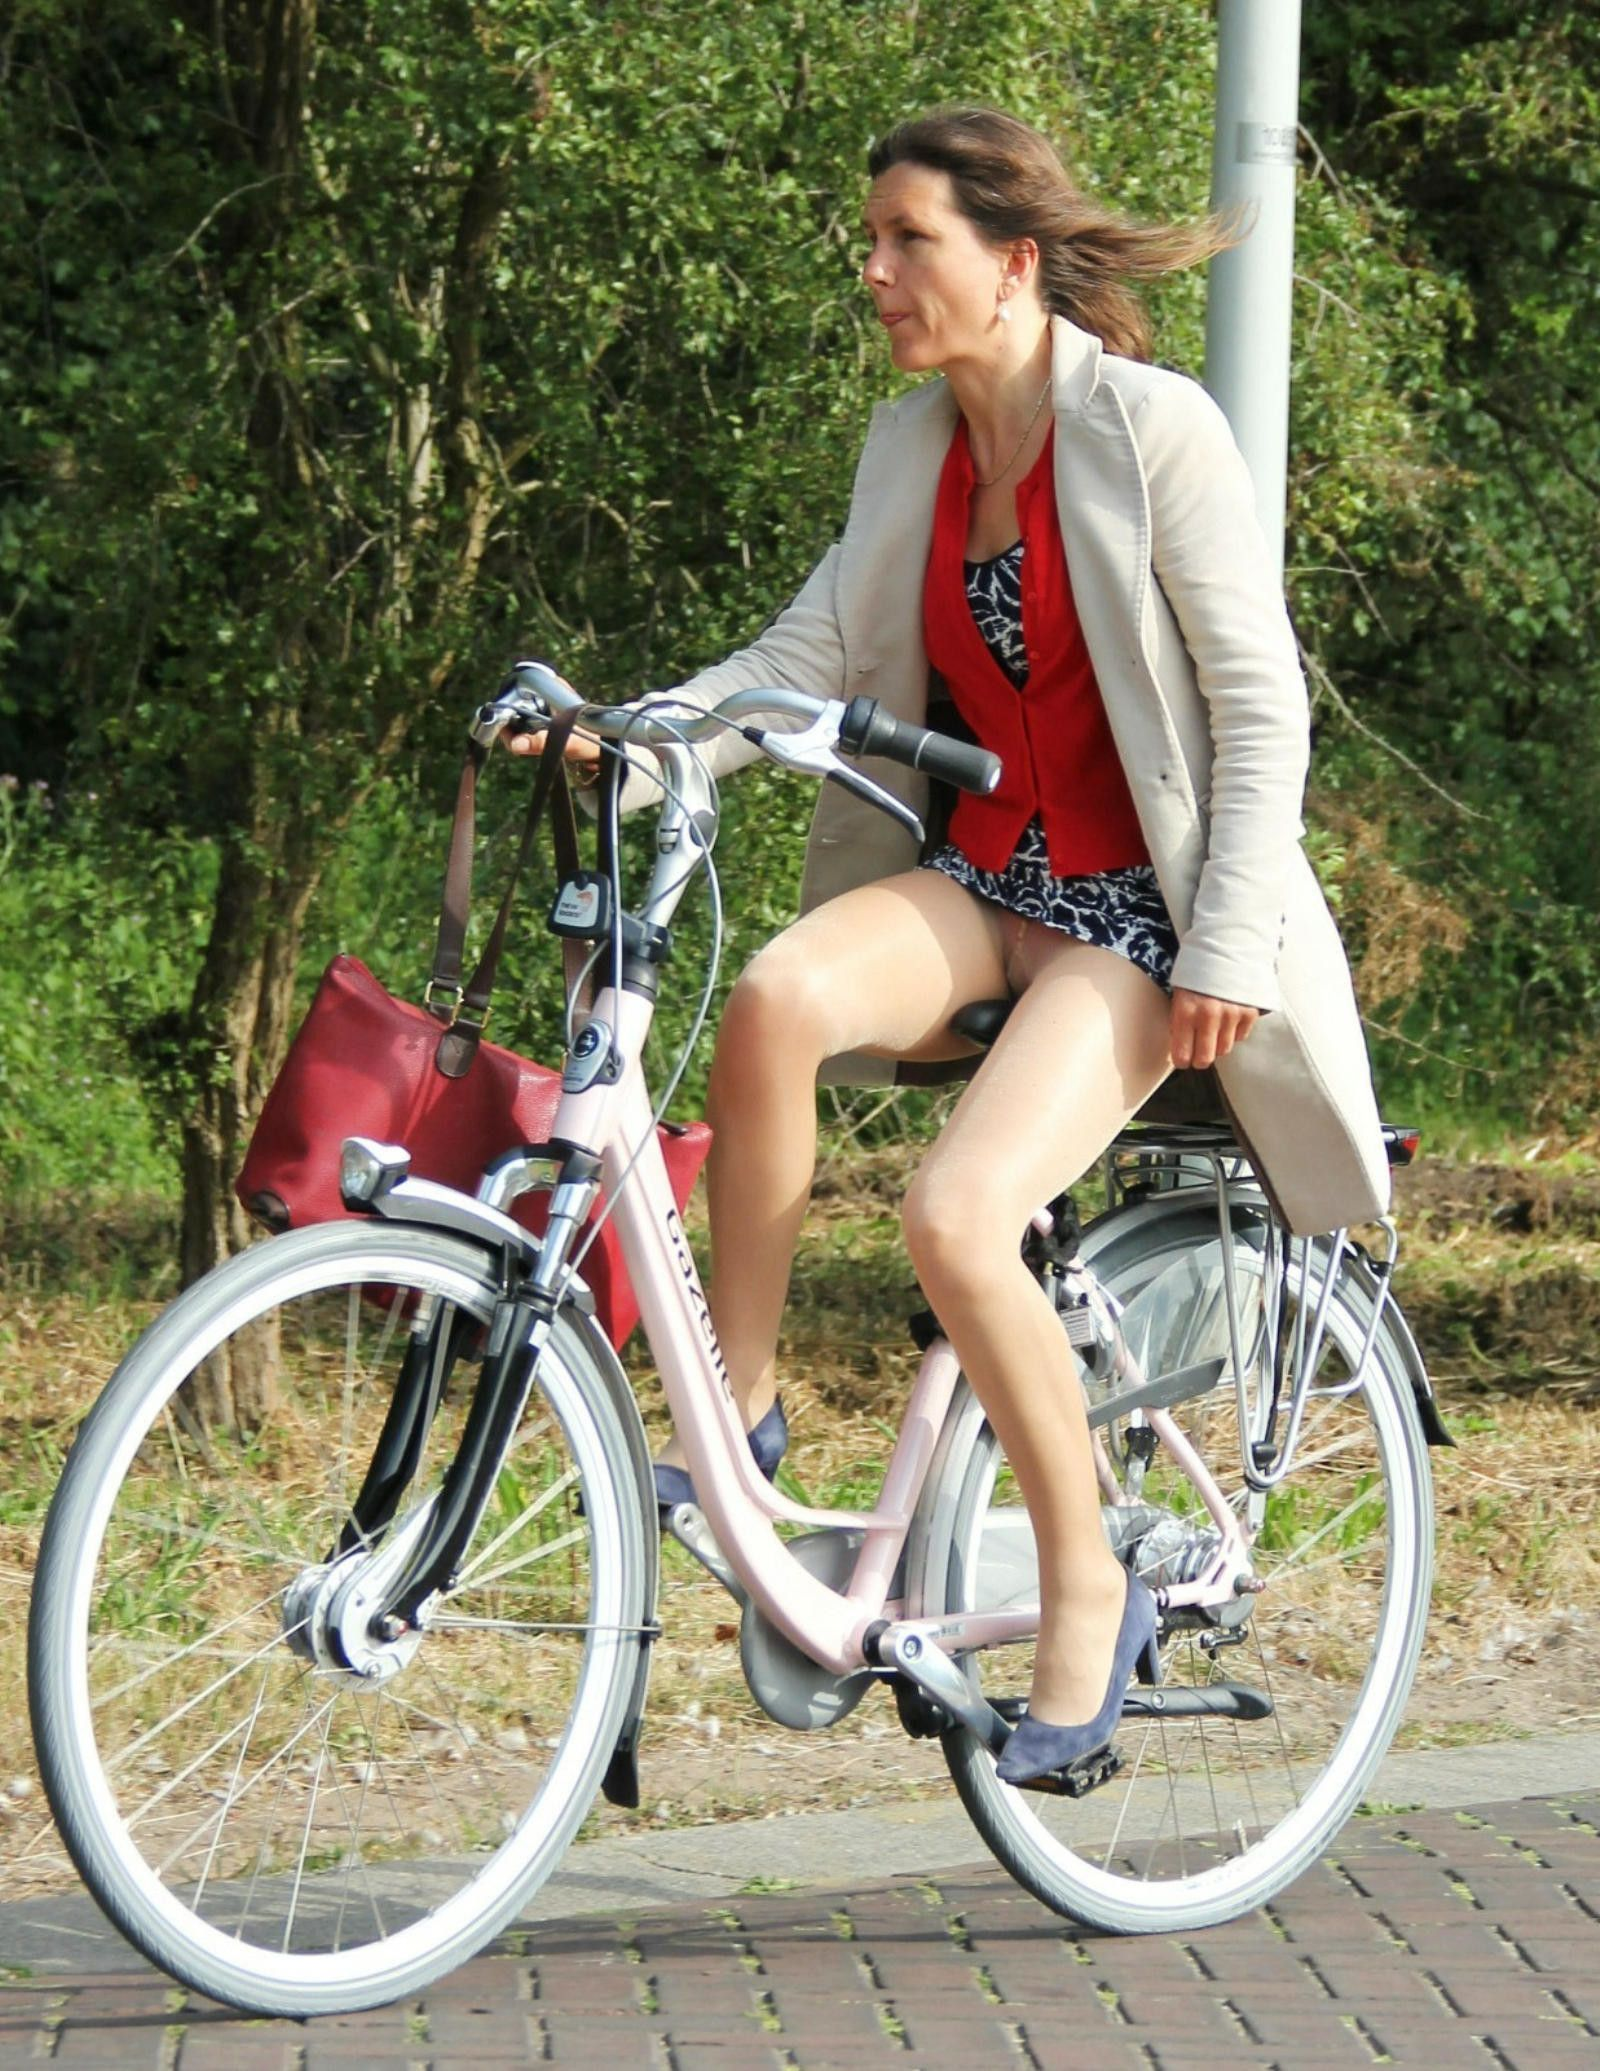 naked-hot-girls-on-bicycles-with-mini-skirt-forum-dunia-sex